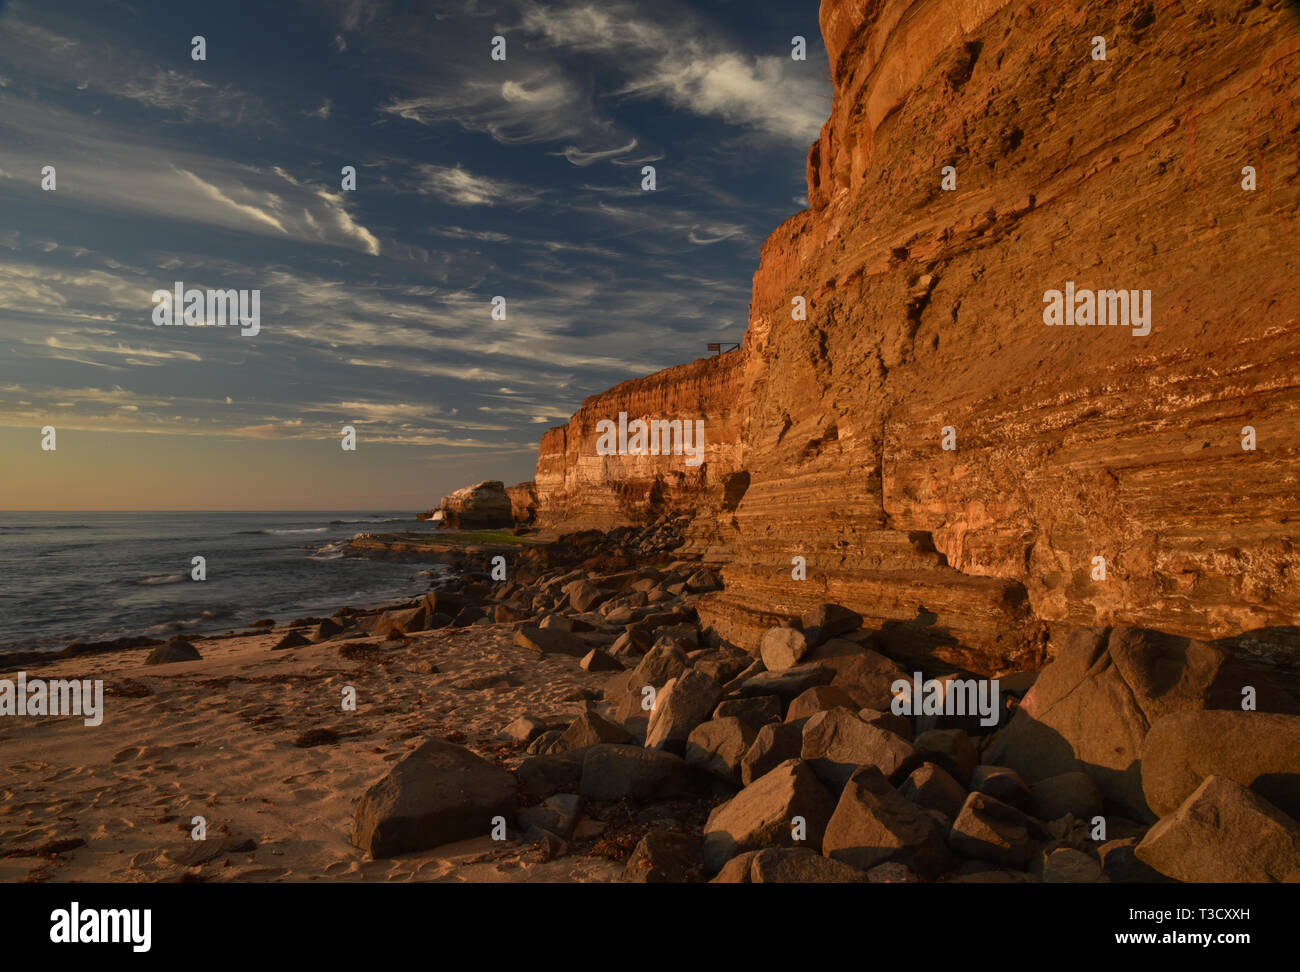 Waves from Pacific Ocean crashing on rocky shoreline along famous Sunset Cliffs, Point Loma, San Diego, CA, USA Stock Photo